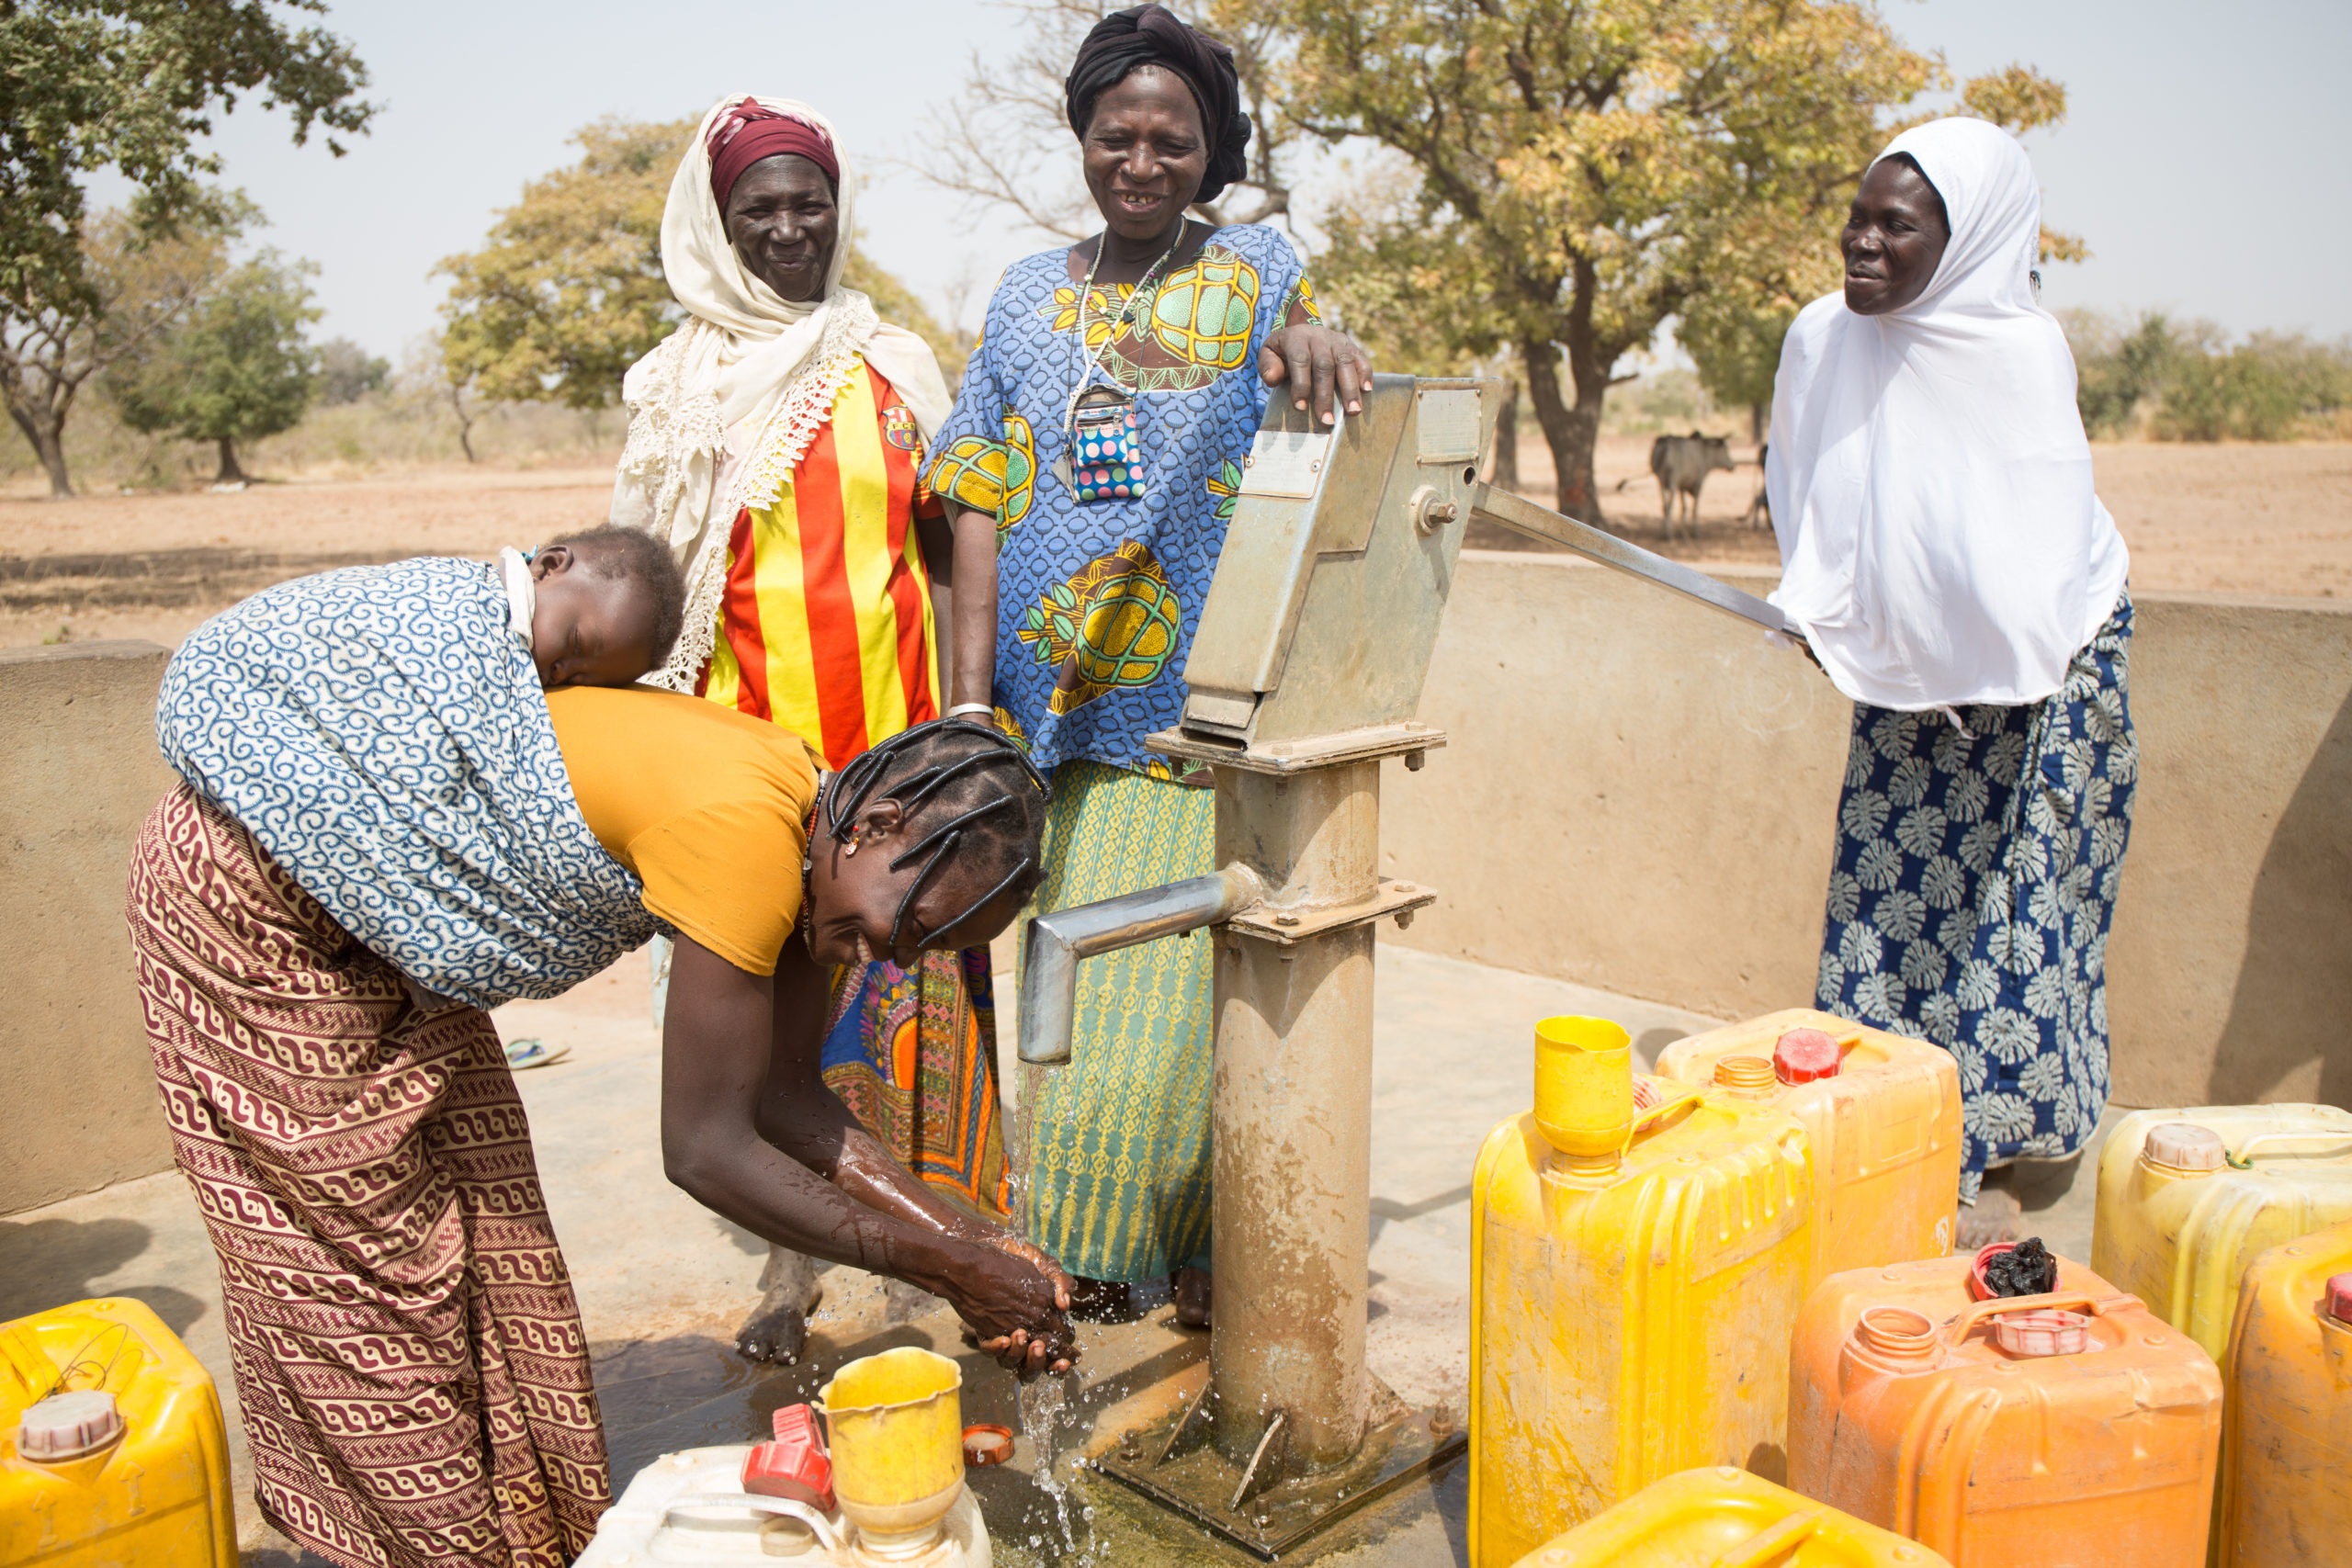 WaterAid and Helmsley Partner to Improve Water, Sanitation and Hygiene for Thousands of People in Burkina Faso